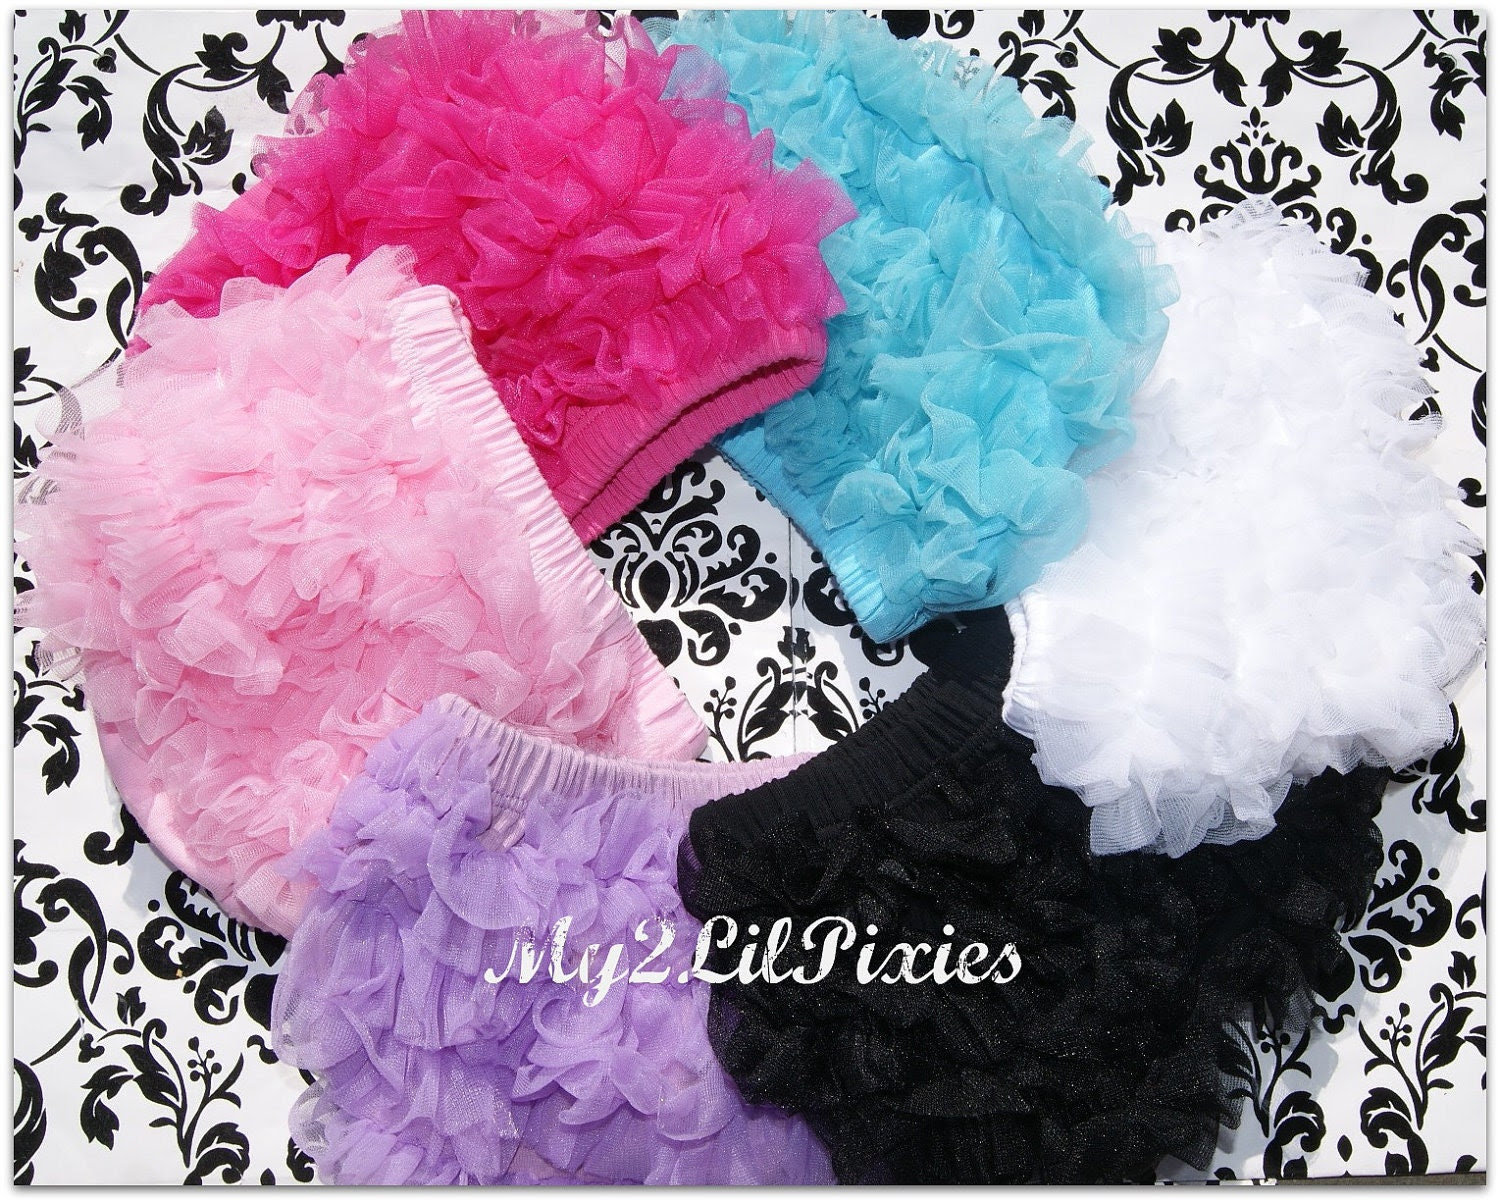 Black FRIDAY SALE READY to ship- Chiffon Ruffle Bum Baby Bloomer -Photo Prop- 13 colors to choose from- Christmas Pictures-MY2Lilpixies